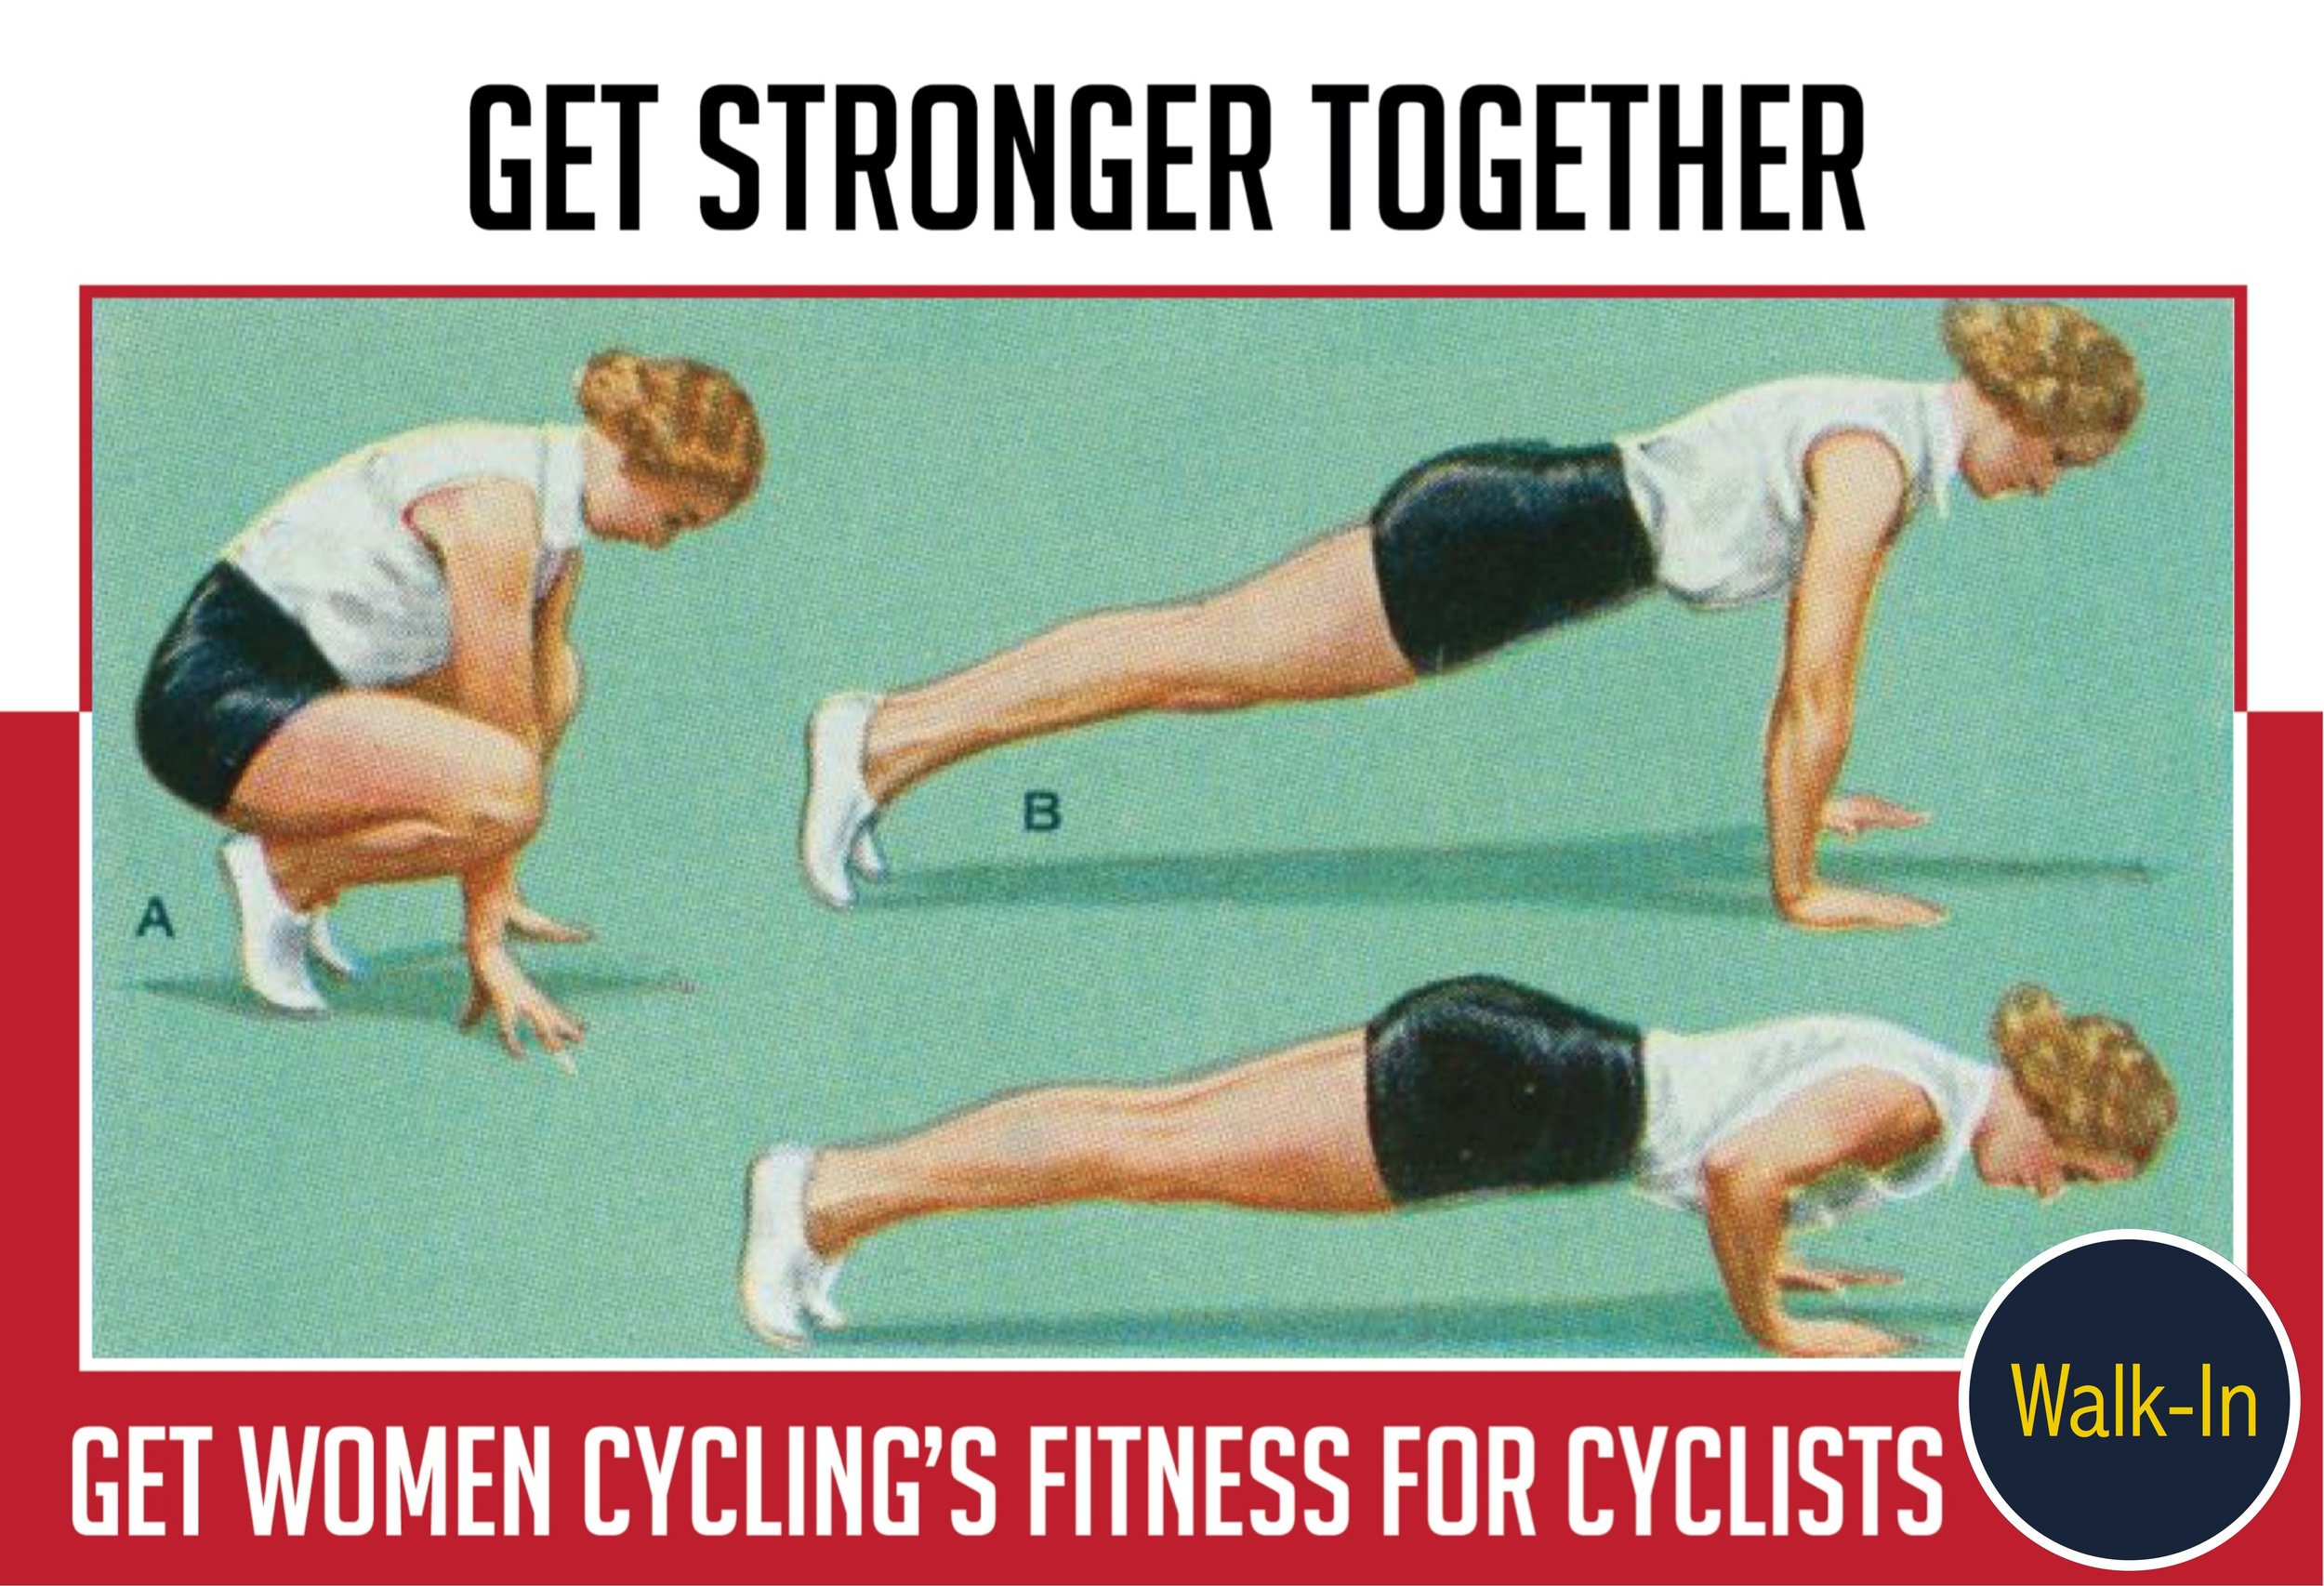 Fitness For Cyclists Walk-in